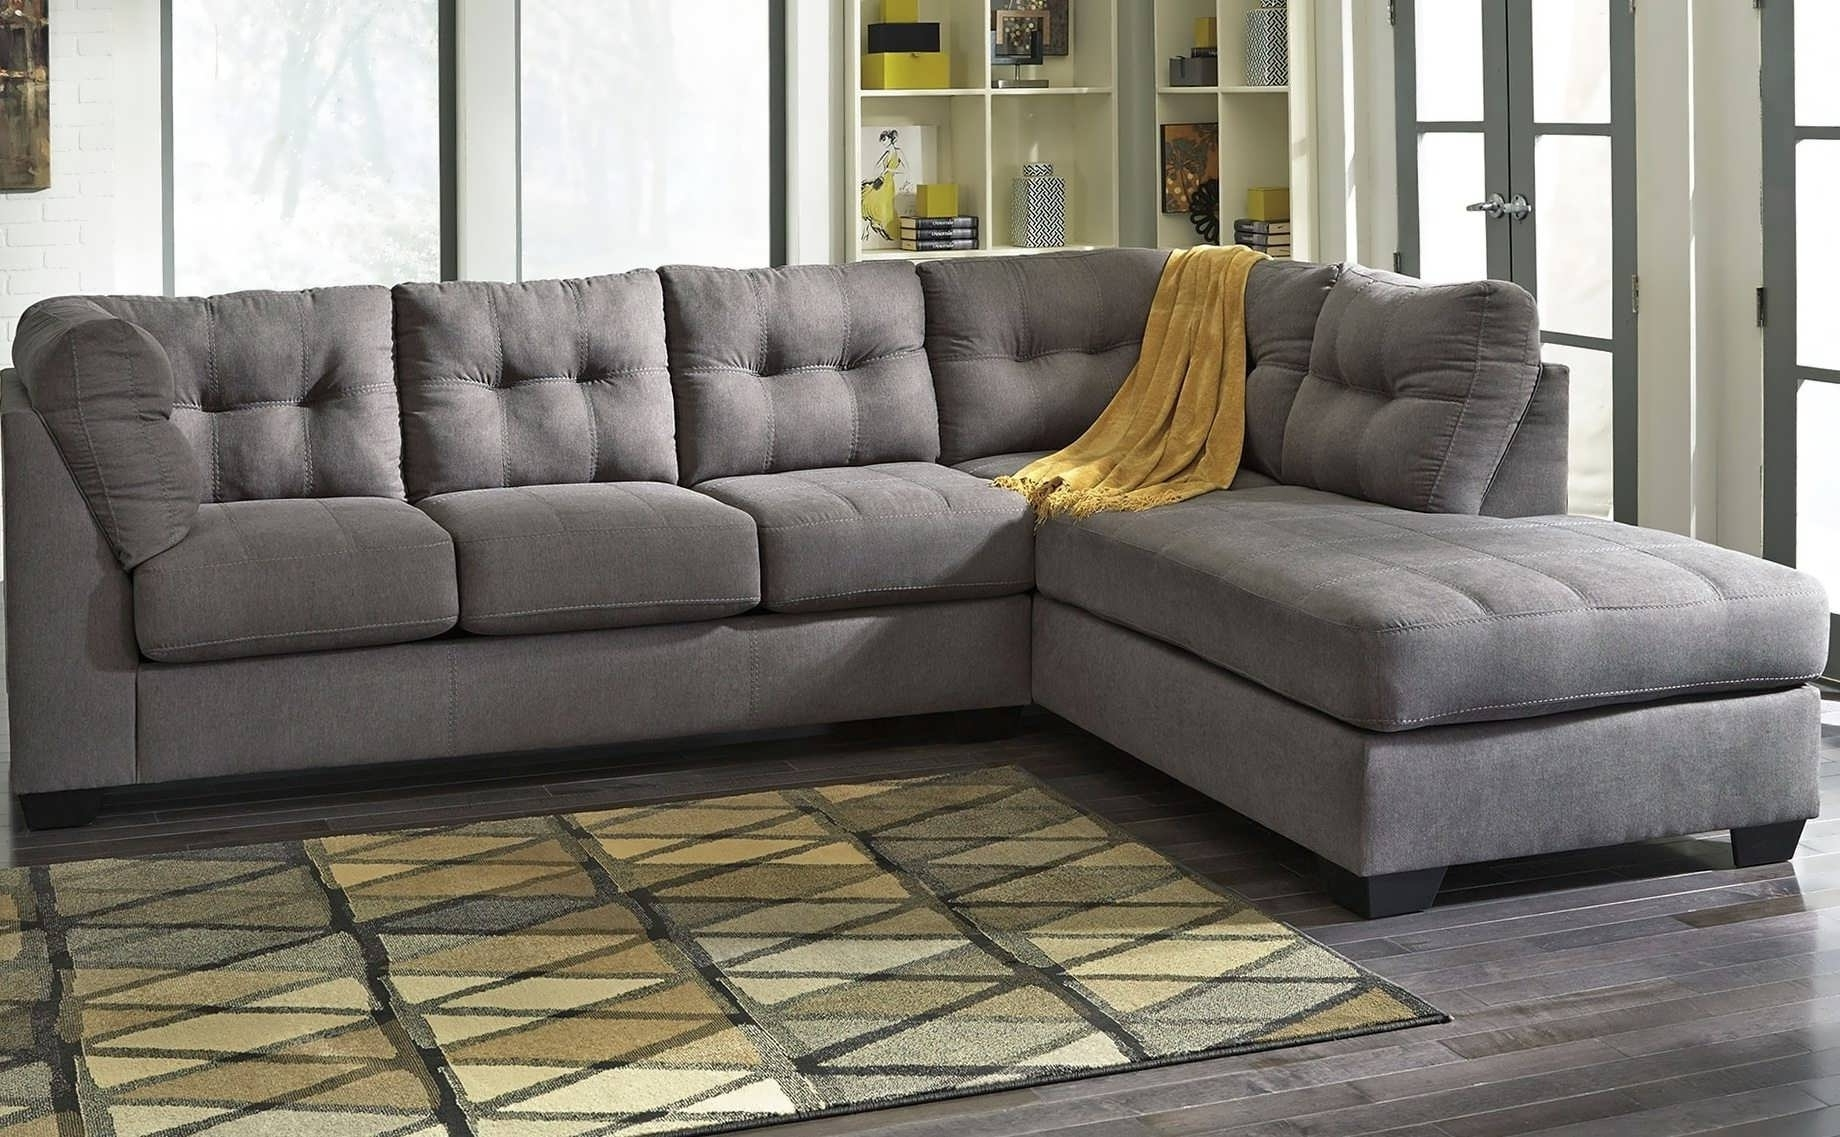 2018 Double Chaise Sectionals With Sofa : Contemporary Sectionals Double Chaise Sectional Sectional (View 9 of 15)